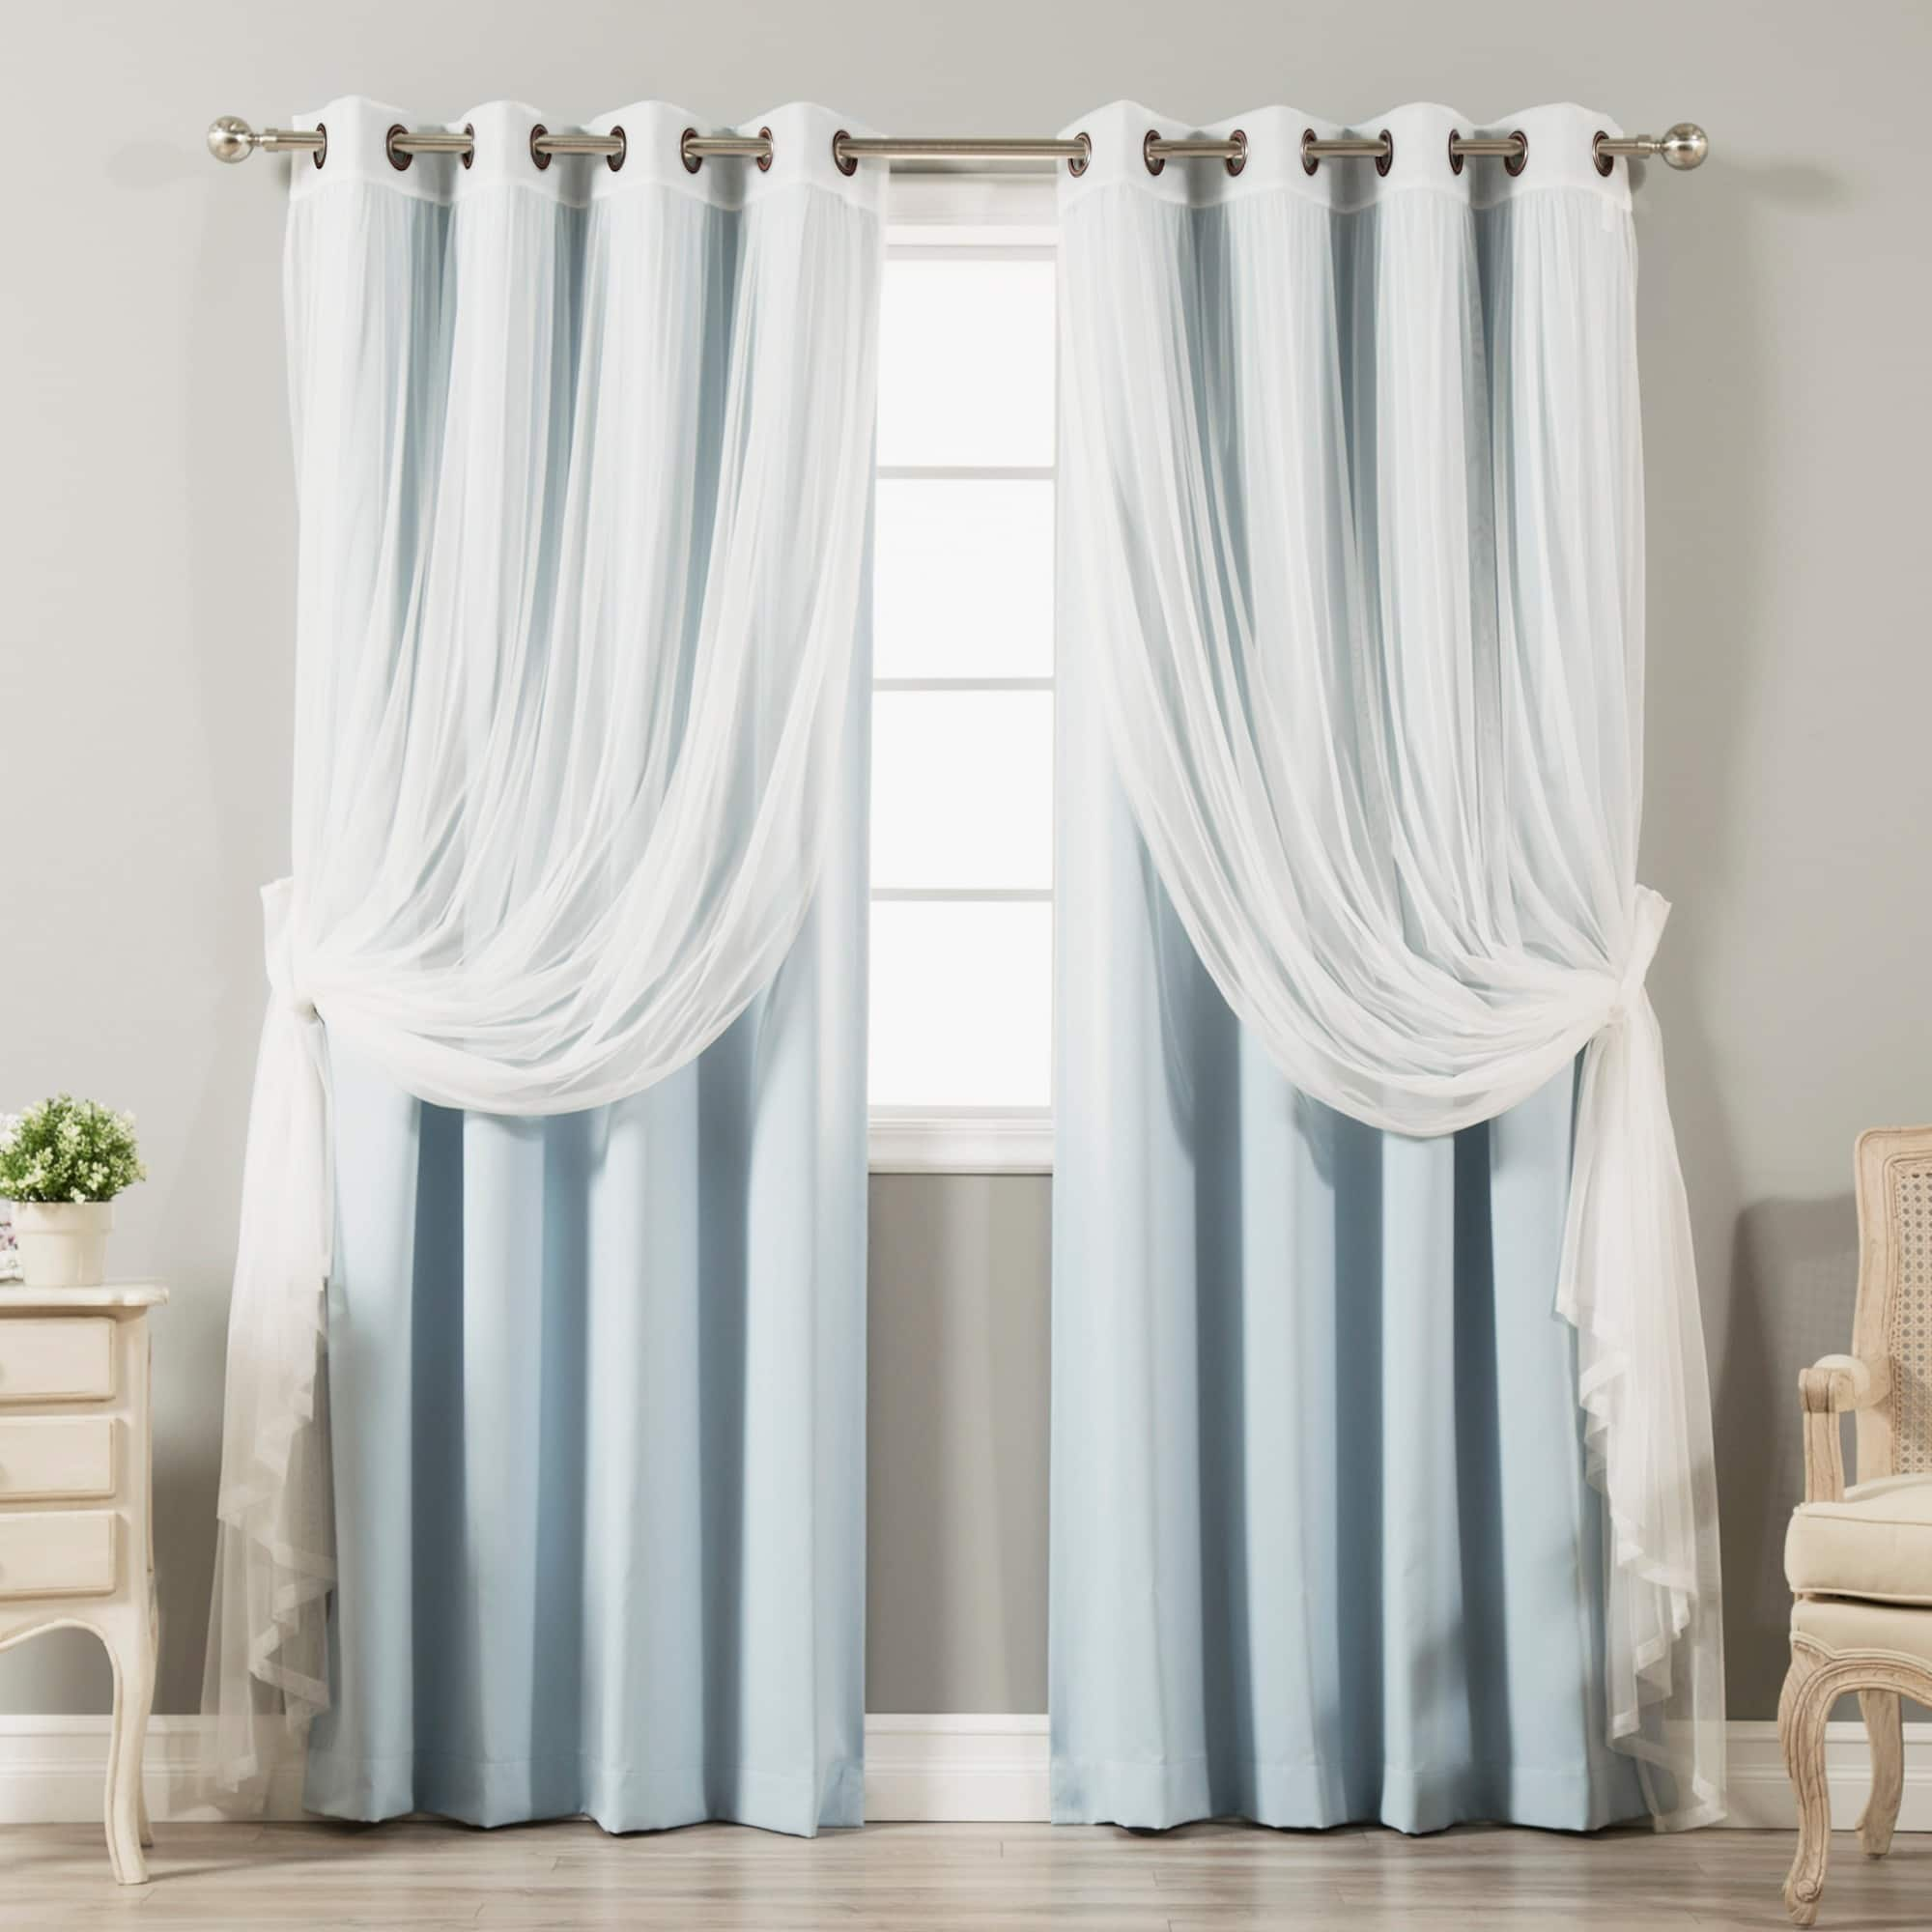 semi curtains thermal insulated ivory sheer winter voile drapes window